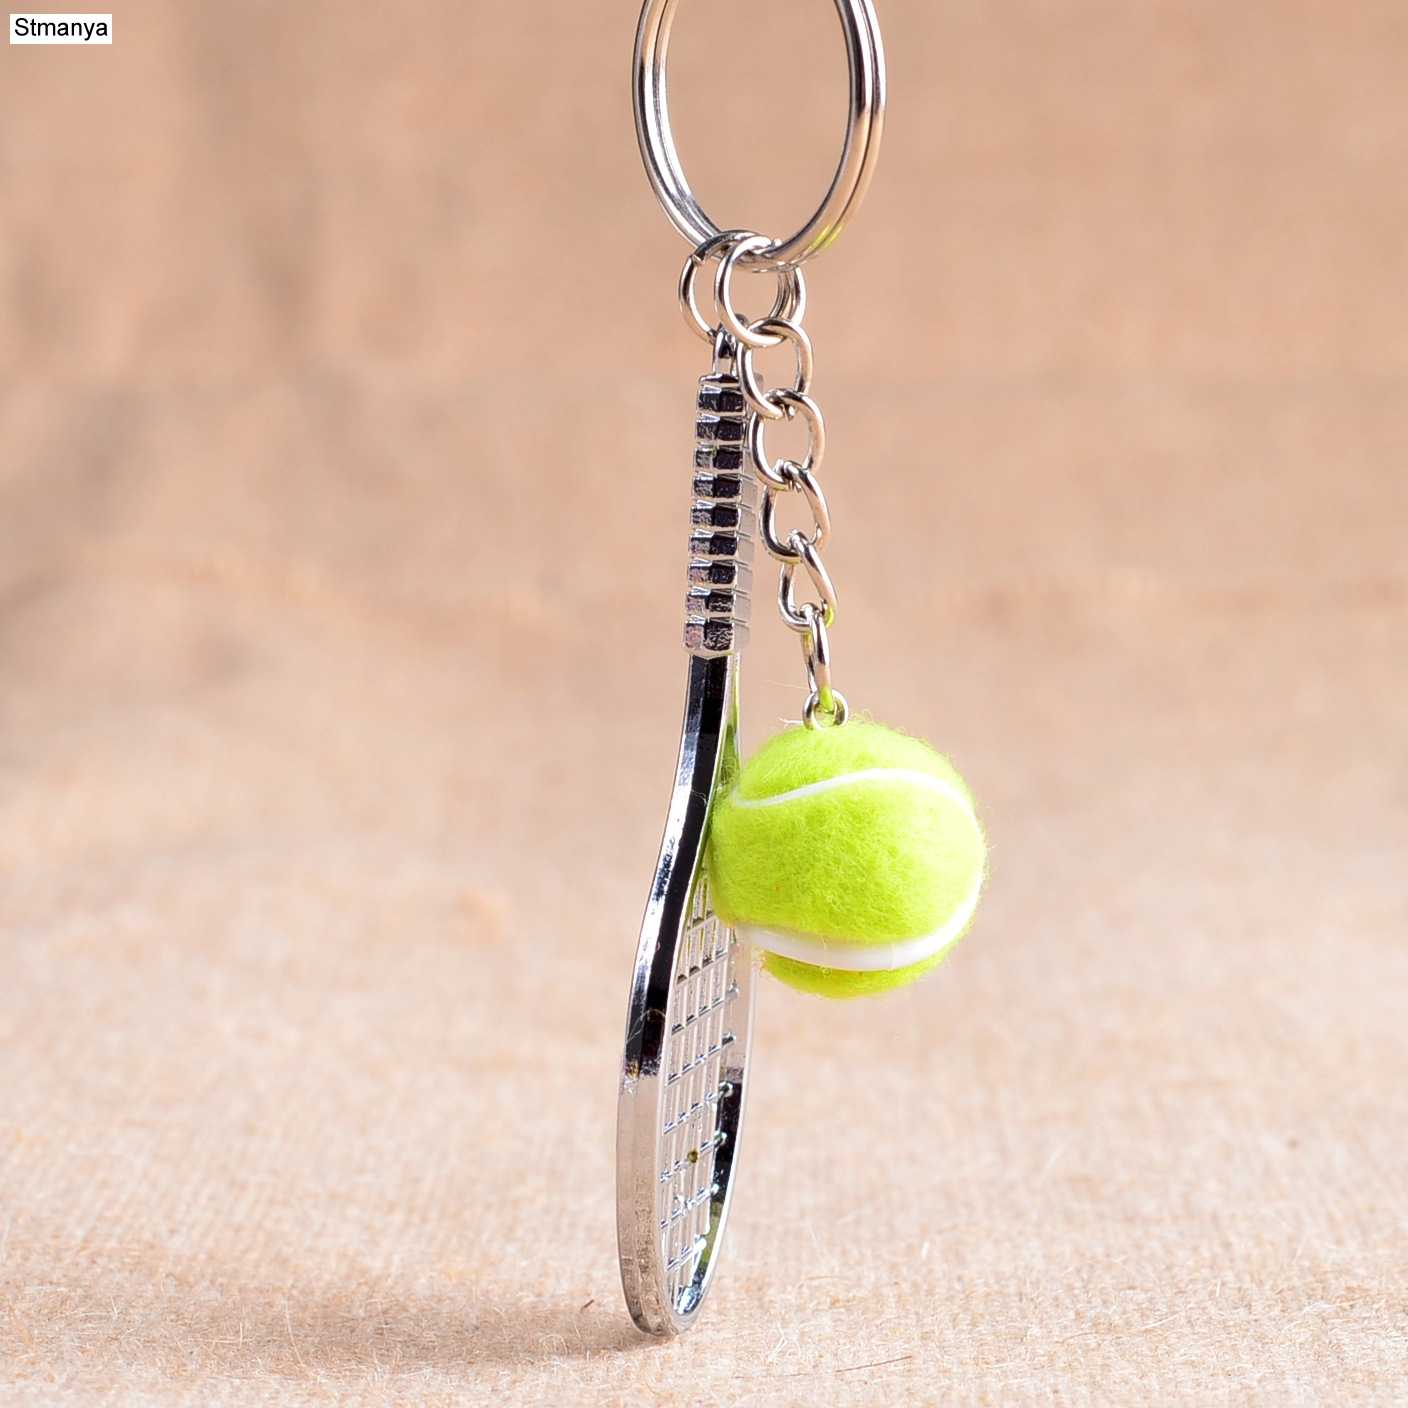 Tennis Racket Keychain - Cute Sport Mini Keychain car 6 color Pendant Keyring Sports Key Chain Who love sports Gifts 17248